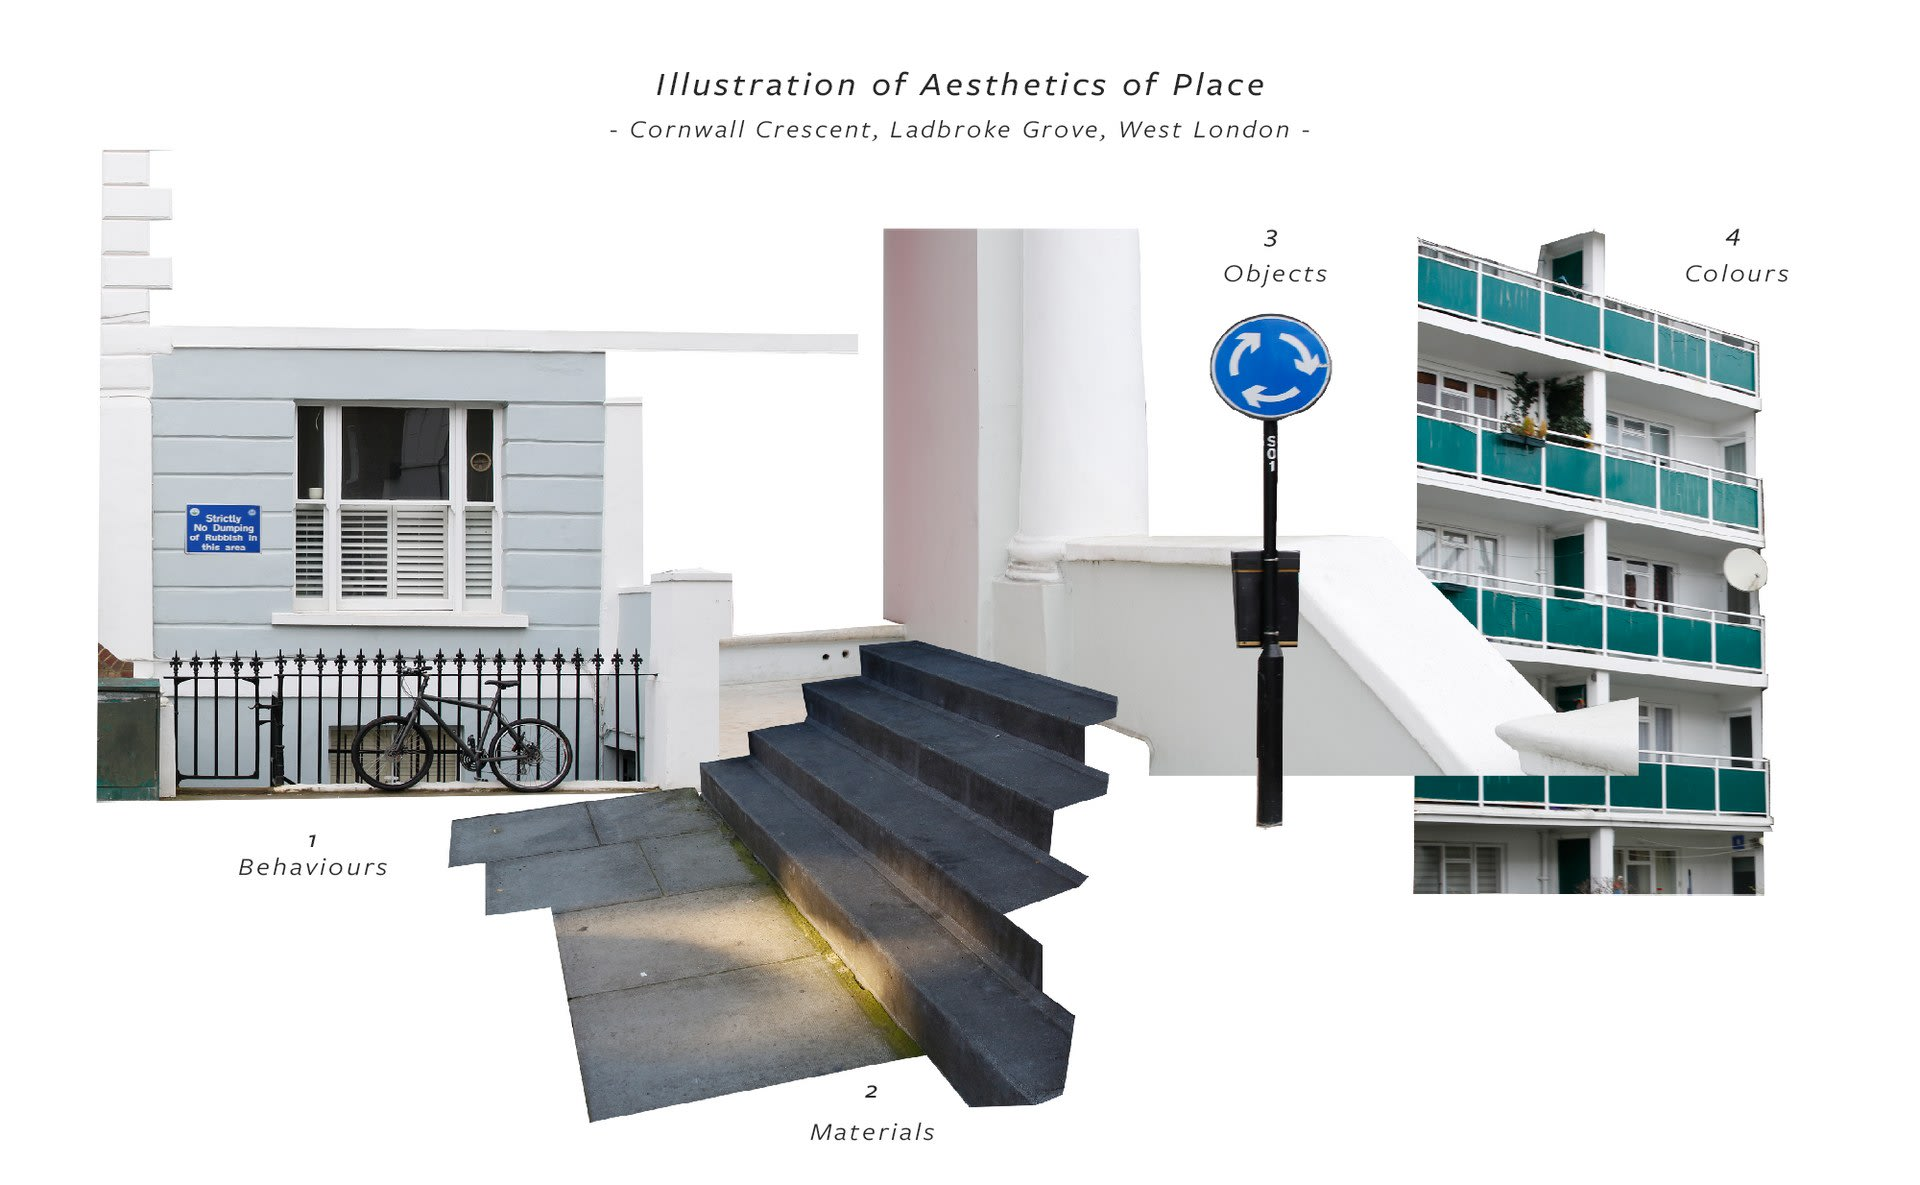 Visual Ethnography, Defining Aesthetics of Place